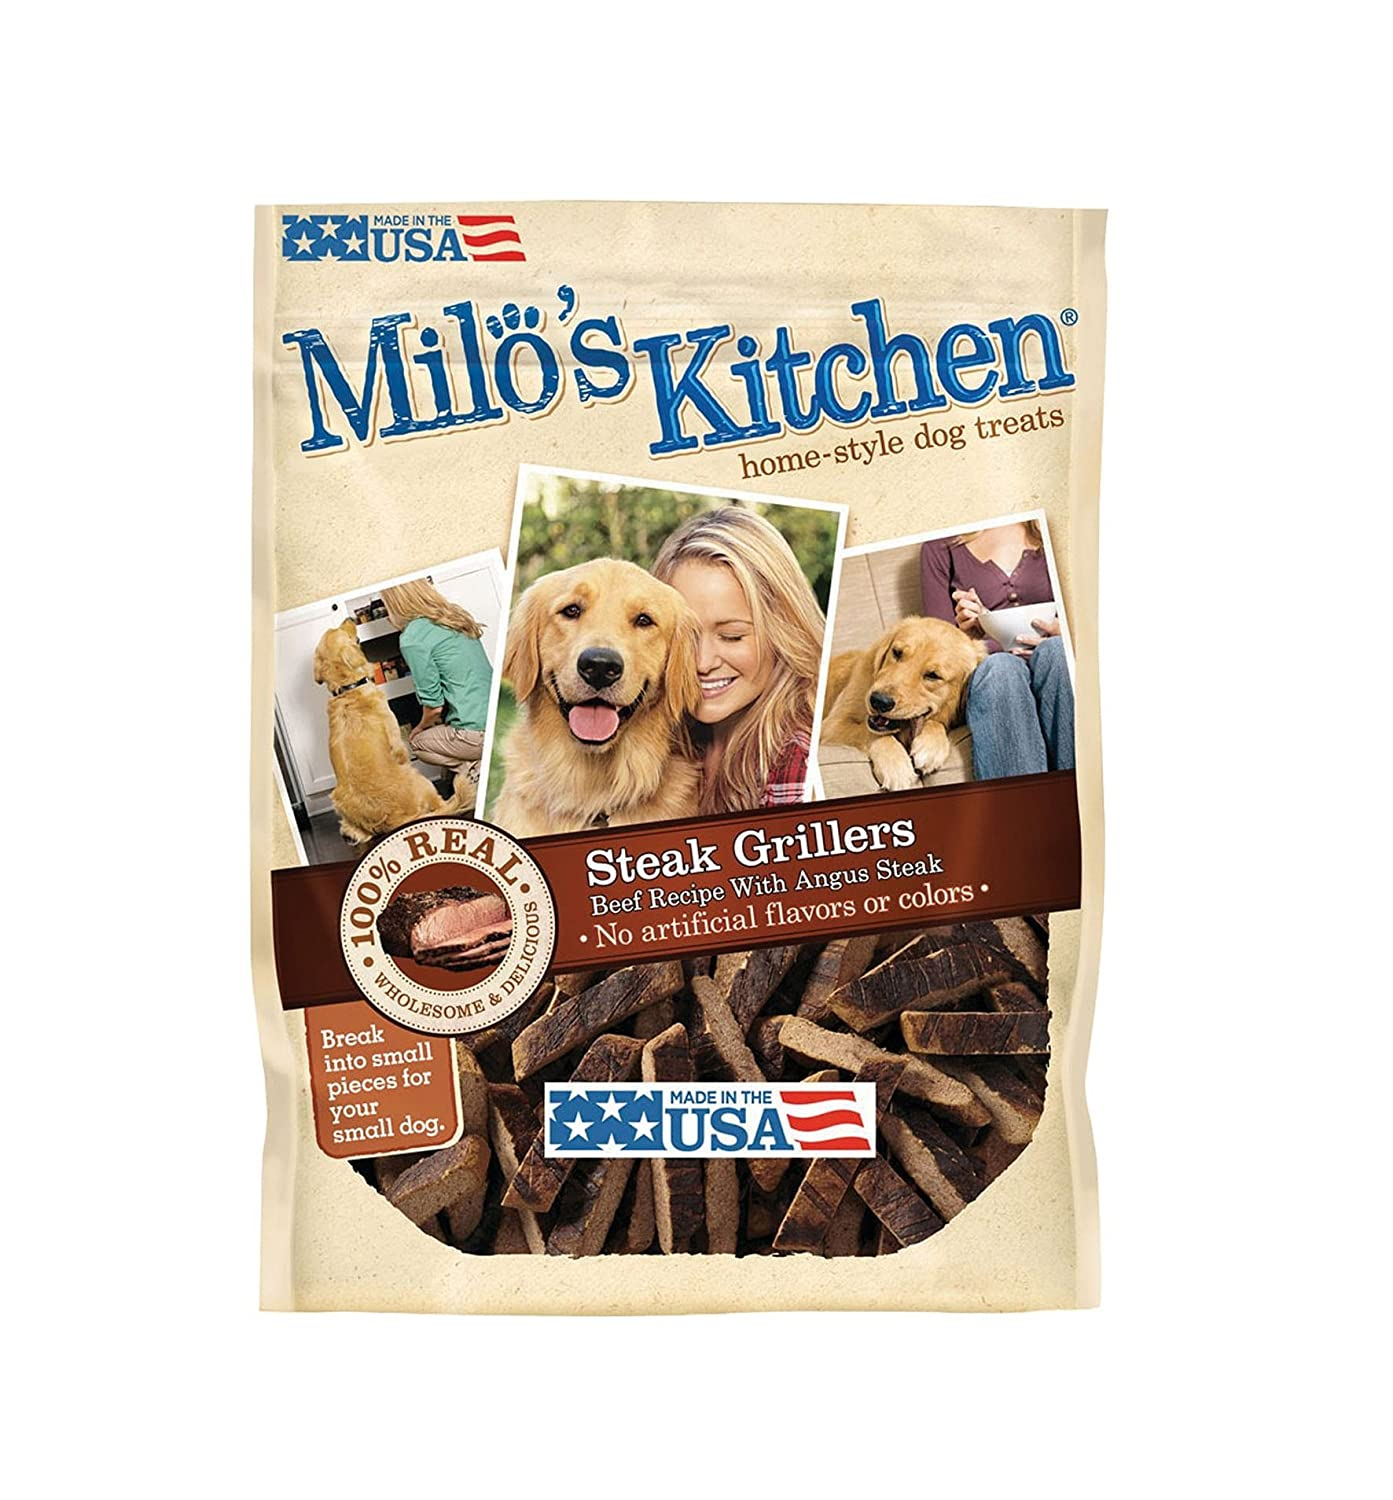 Milo S Kitchen Steak Grillers Home-Style Dog Treats With Angus Steak, 30 Oz